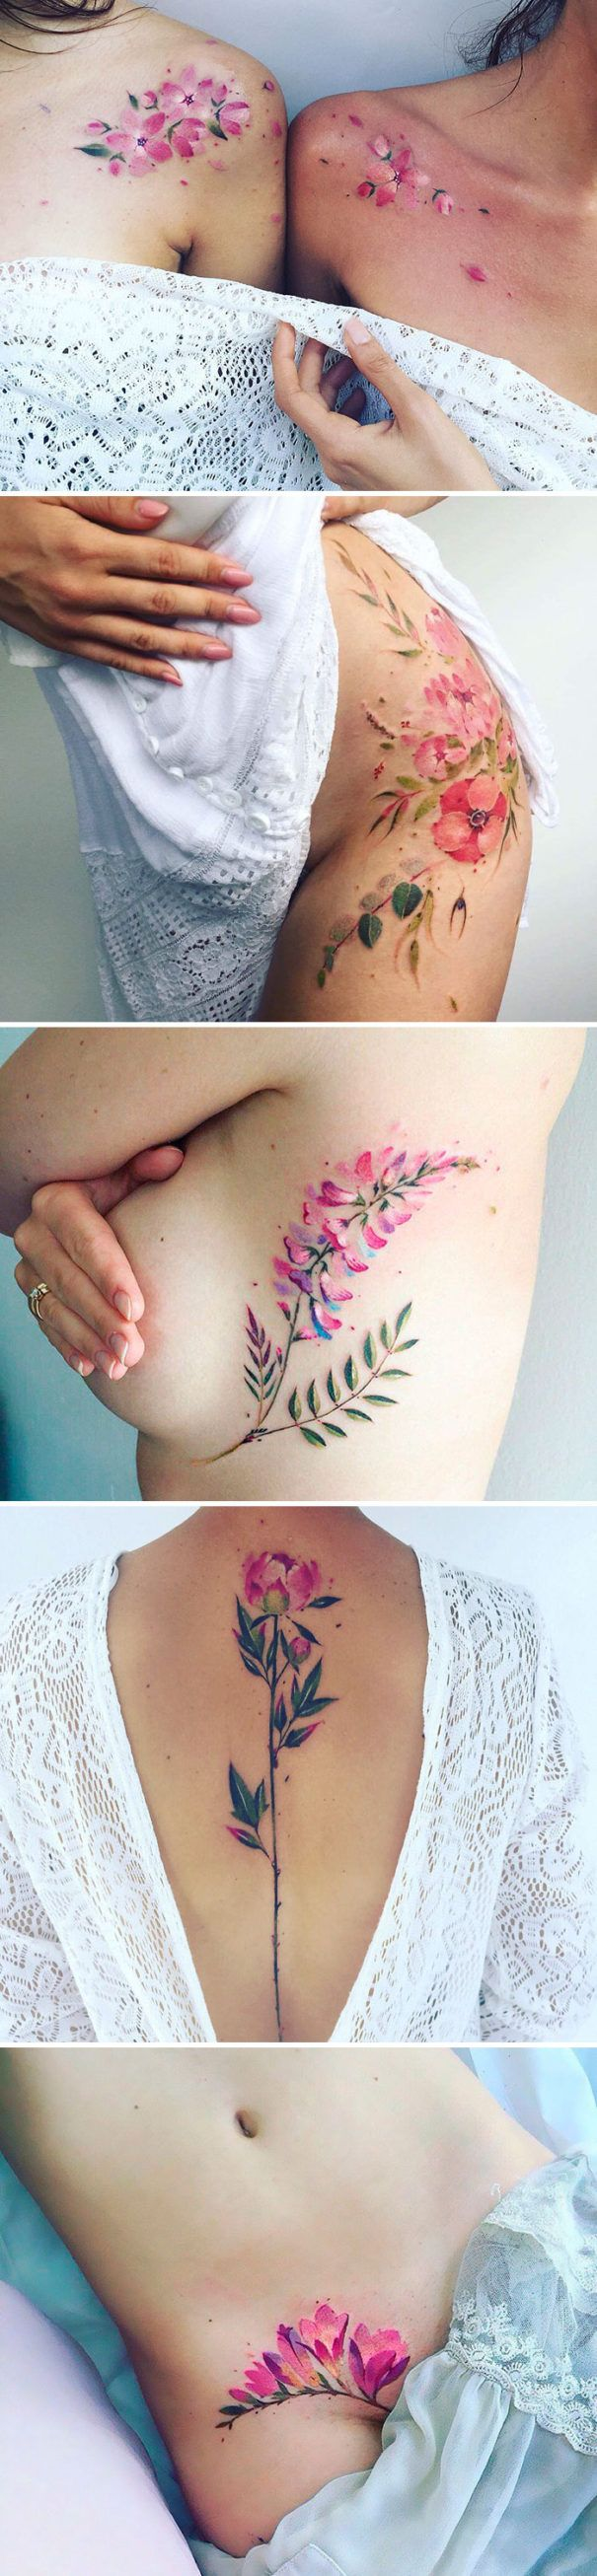 826 best beautiful tattoos images on pinterest tattoo ideas spring is upon us and summer isnt far behind it meaning floral flower spine tattoosfloral izmirmasajfo Image collections